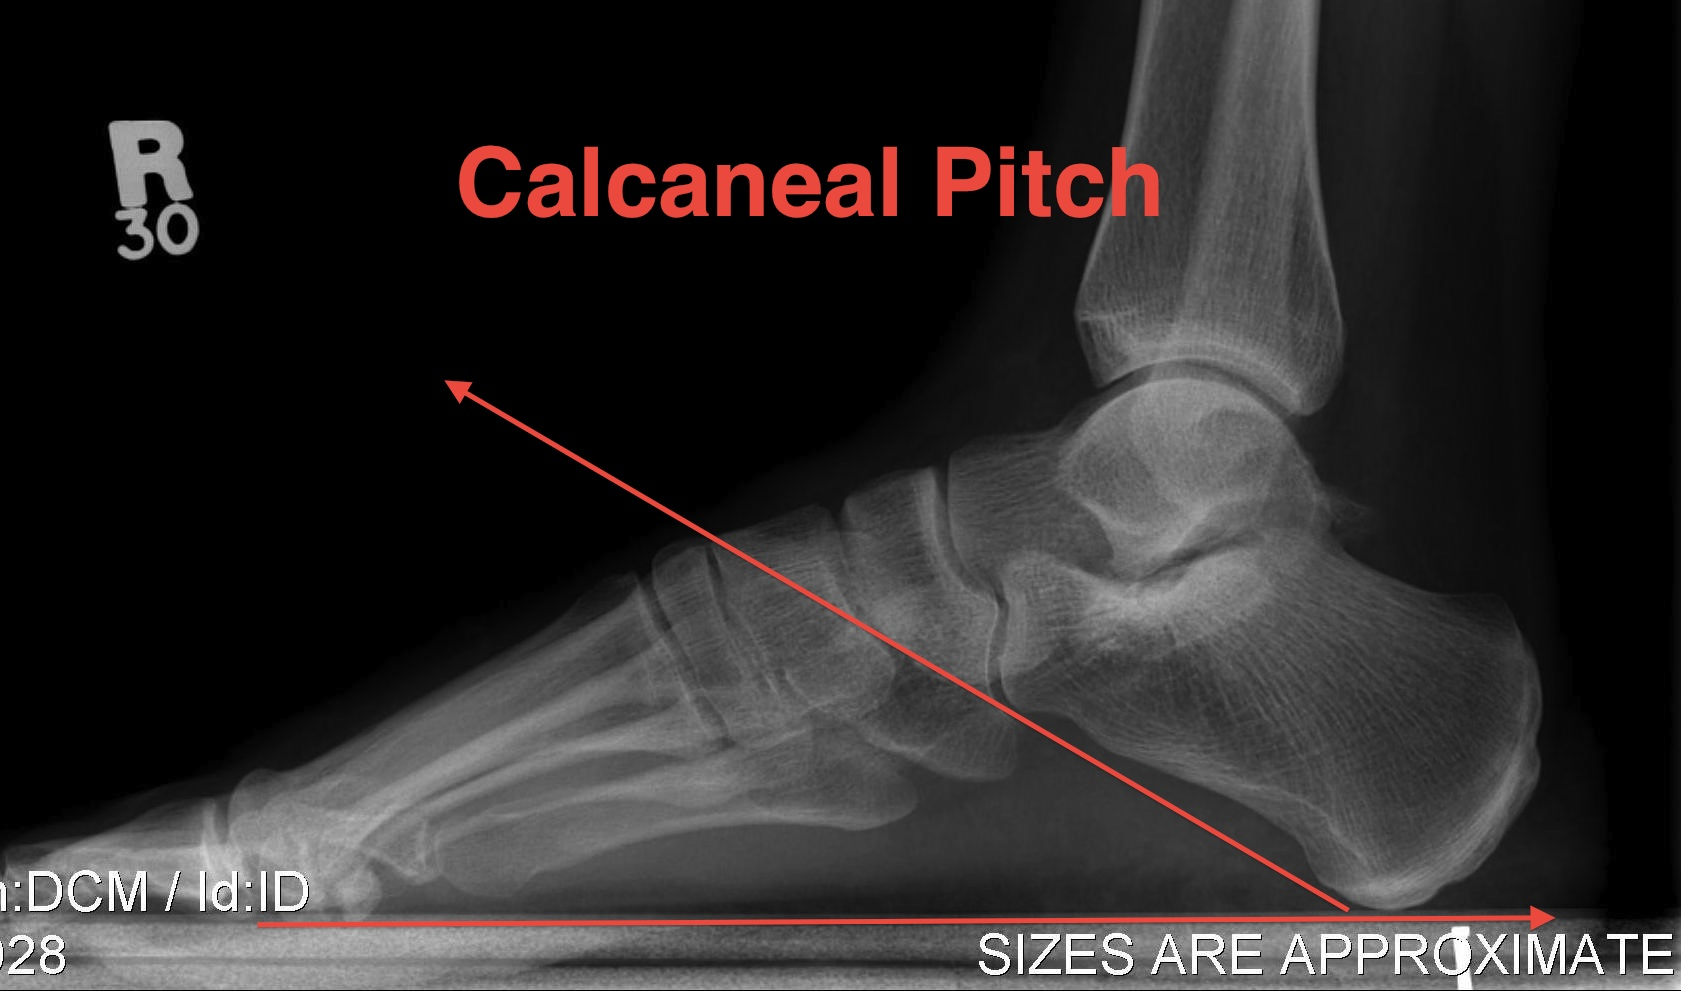 Calcaneal Pitch